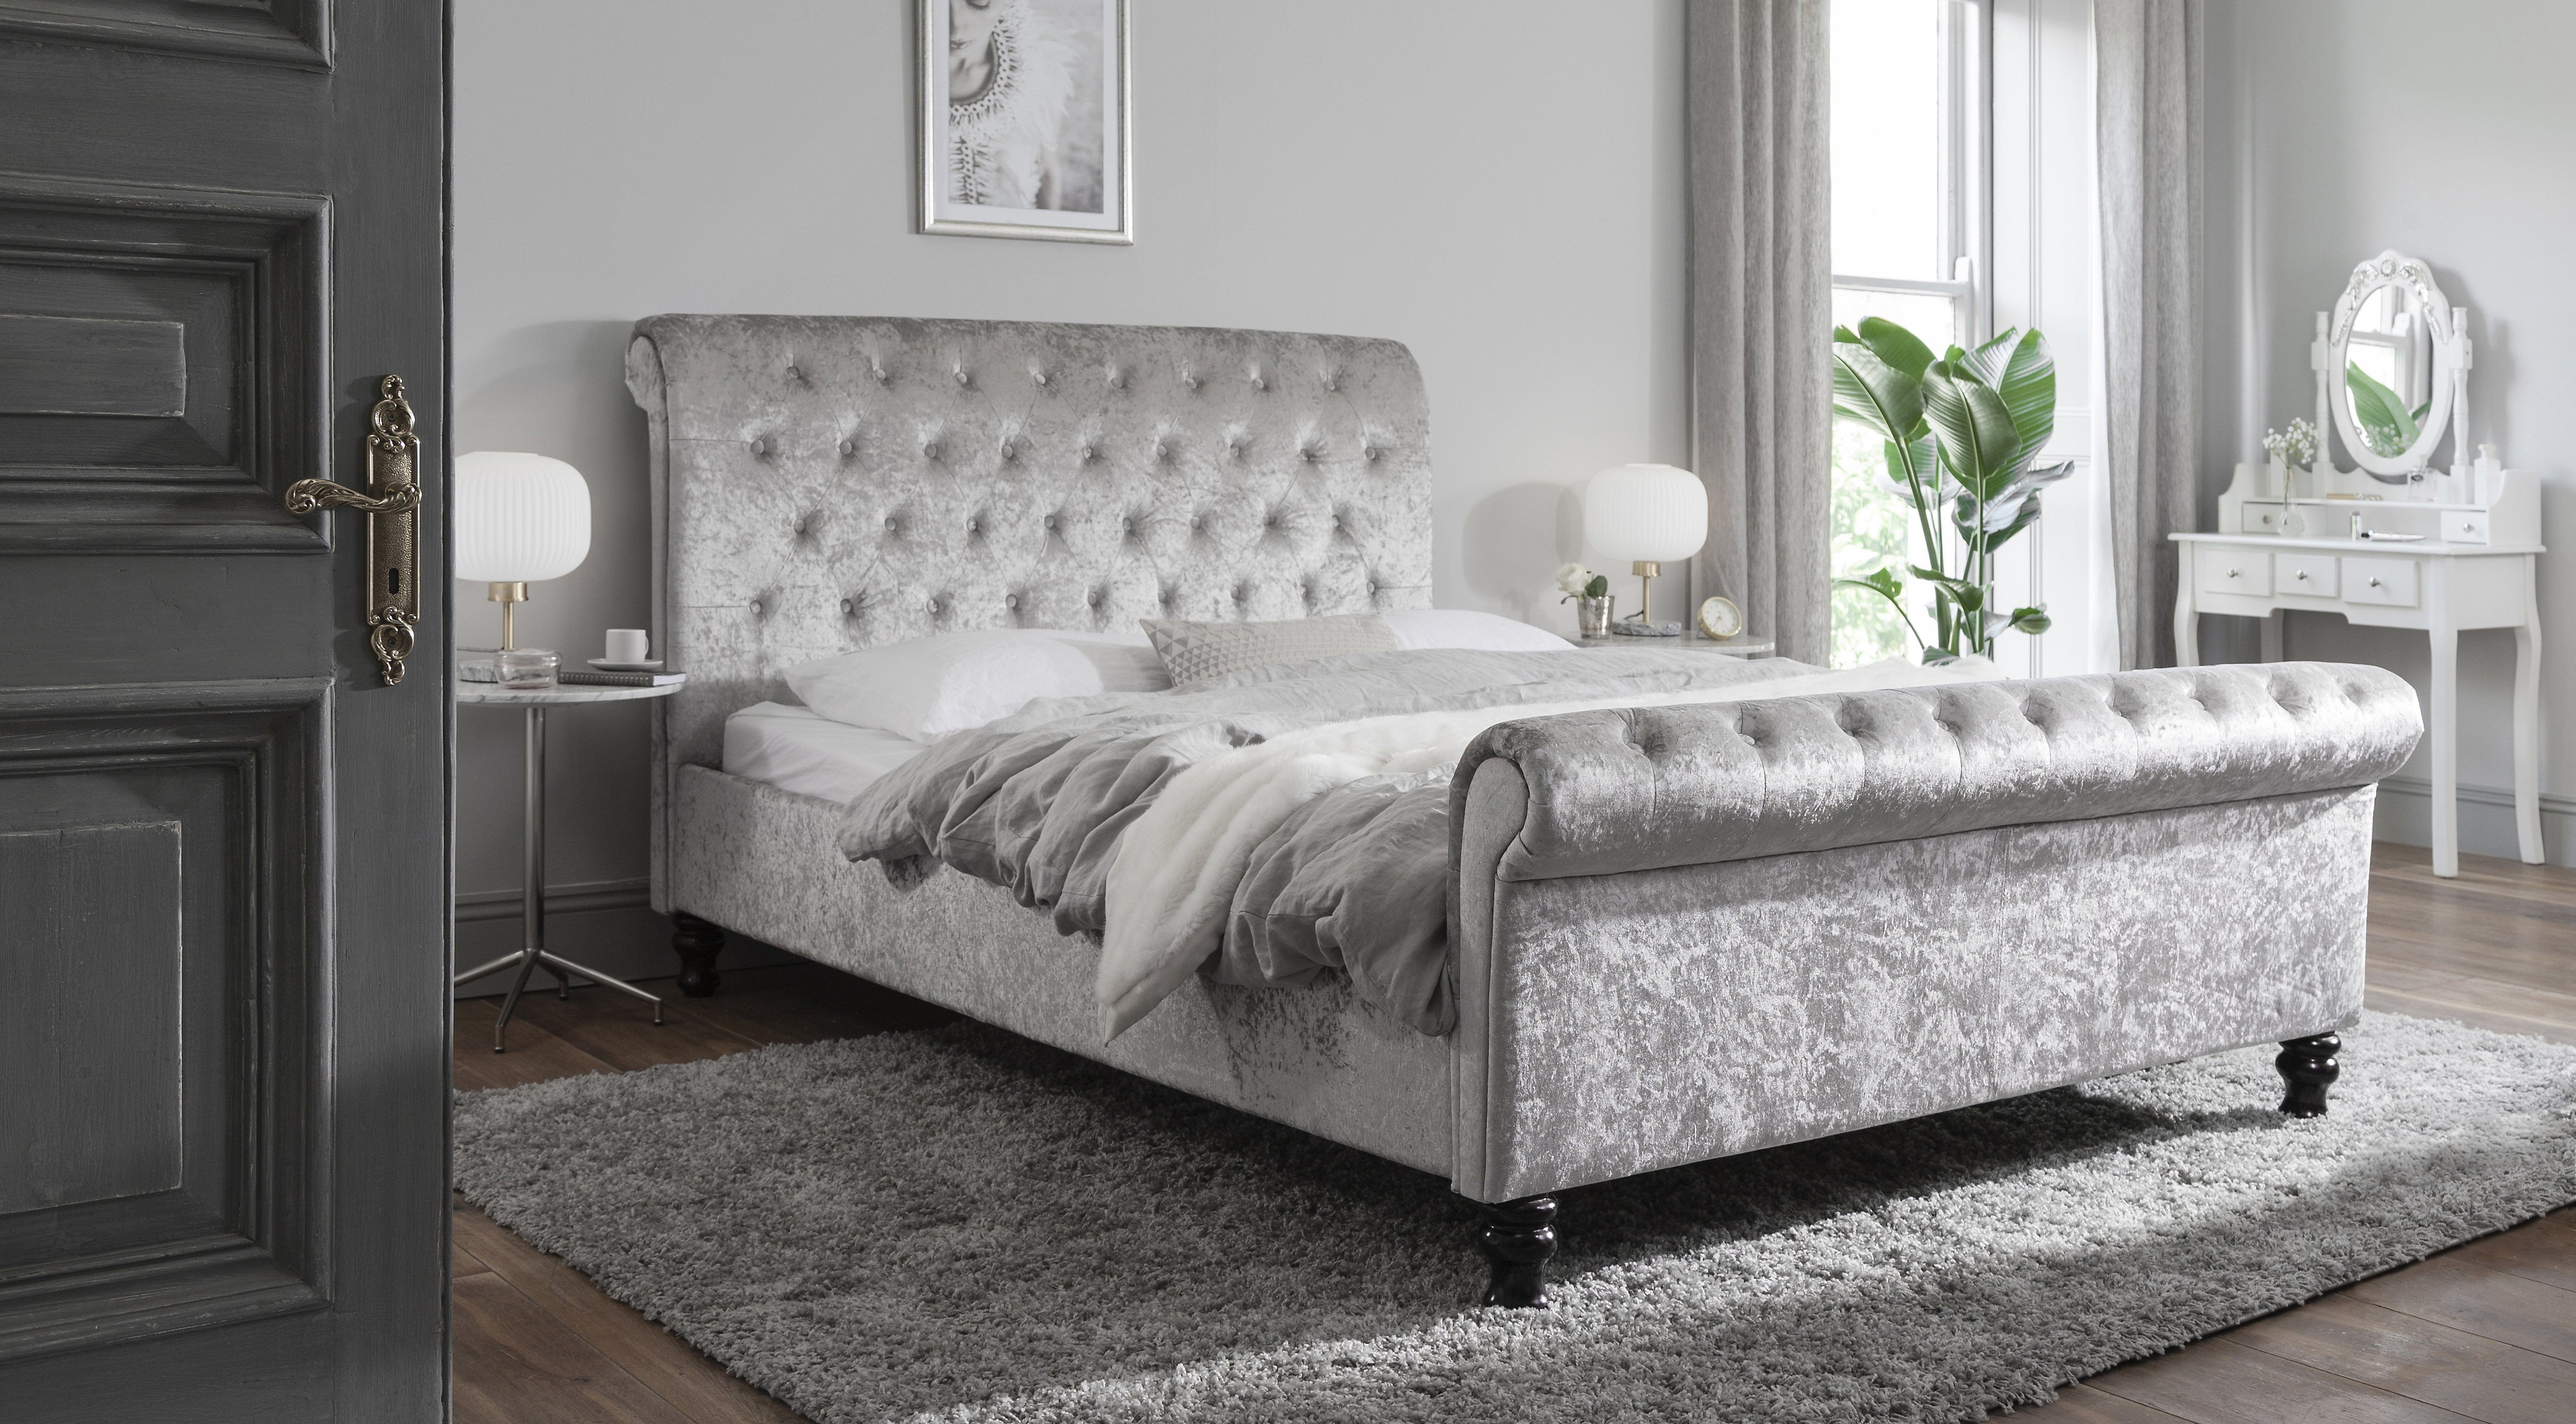 Picture of: Silver Crushed Velvet Sleigh Bed Frame King Size Delivery On Or Befo Laura James